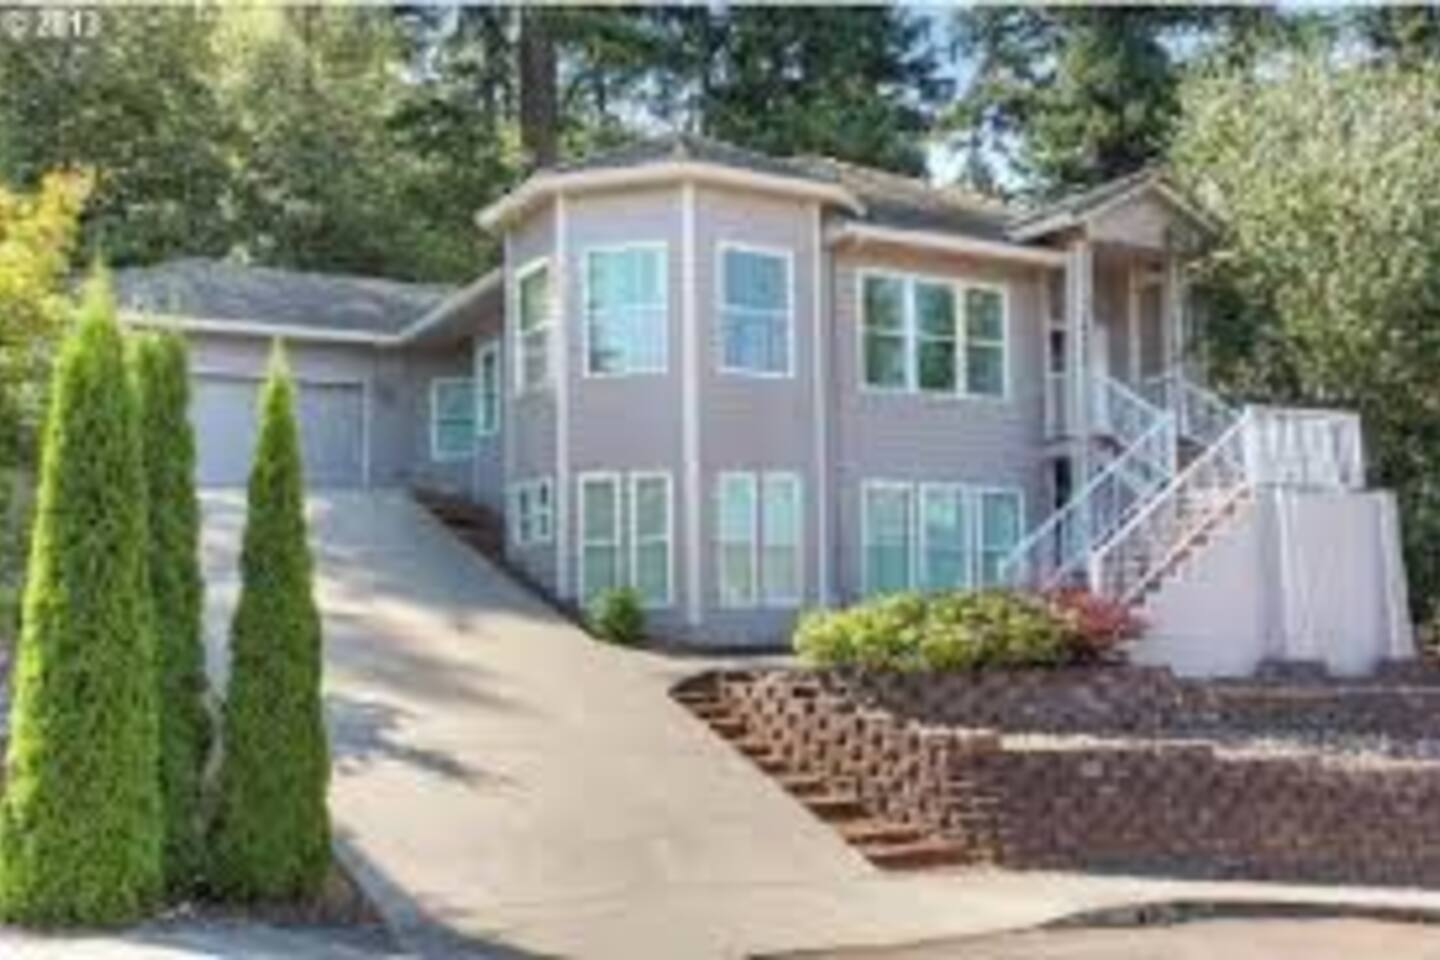 800 square foot Studio in lower level. Quiet upscale neighborhood with forest behind home